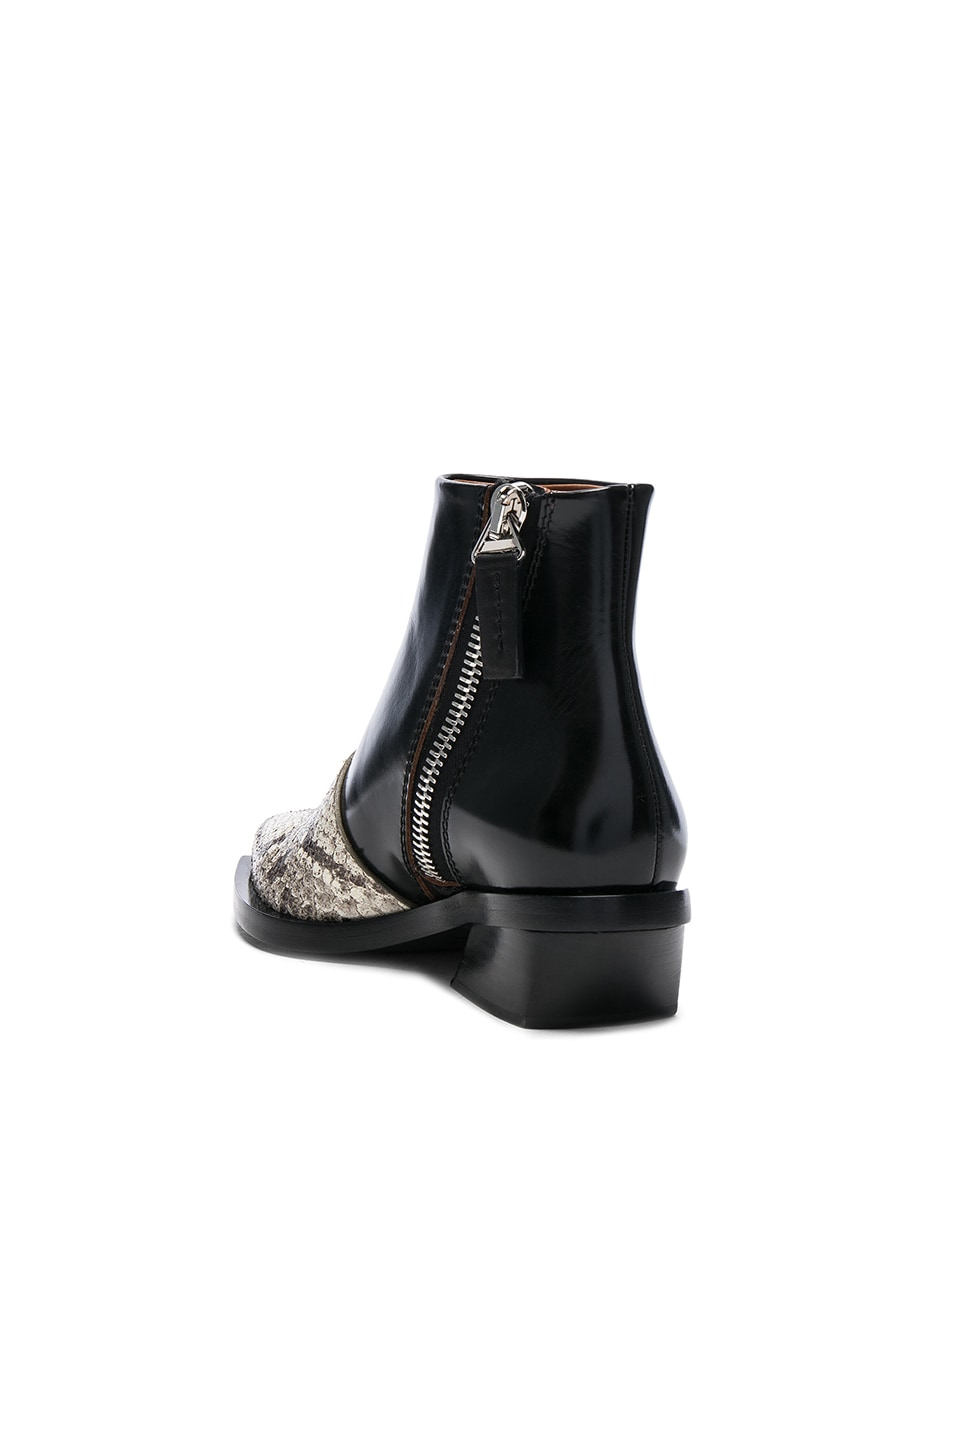 Image 3 of Proenza Schouler Leather & Snakeskin Ankle Boots in Black & Natural